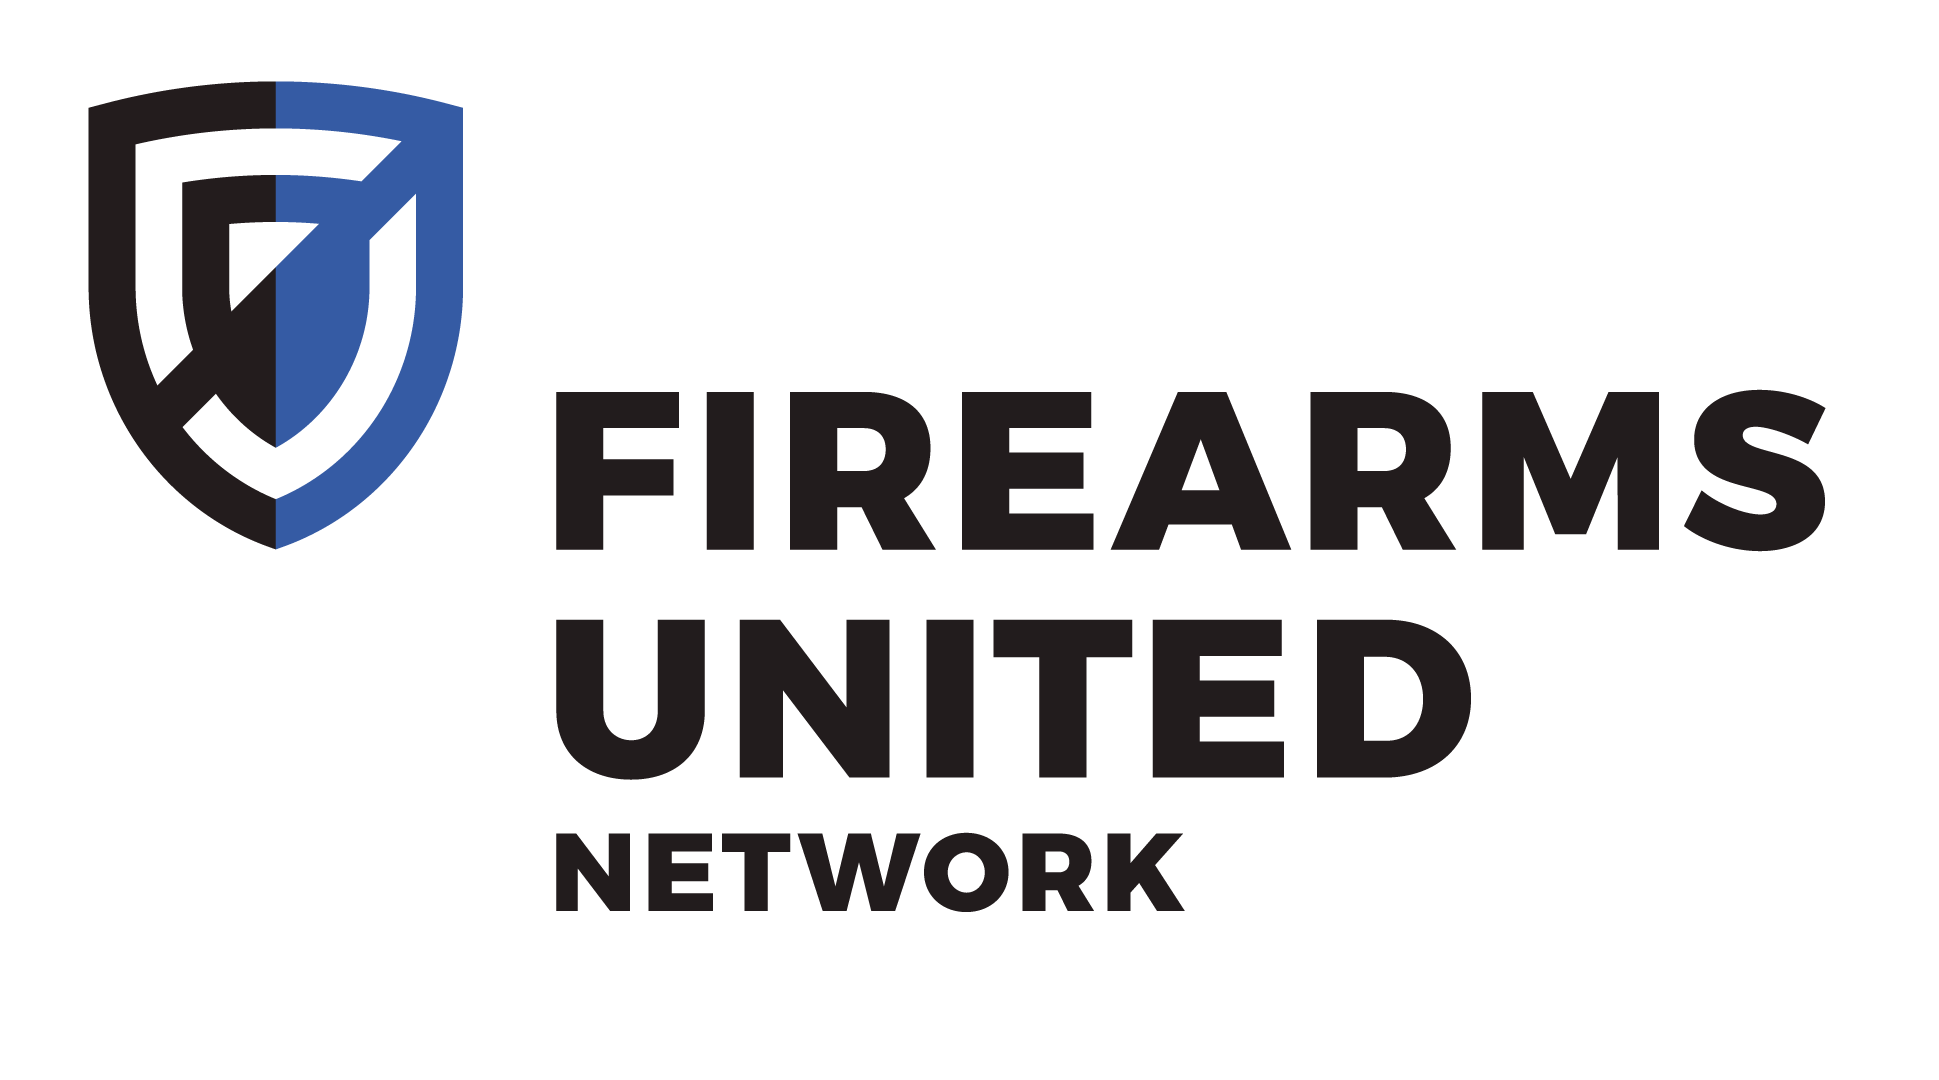 FIREARMS UNITED Network